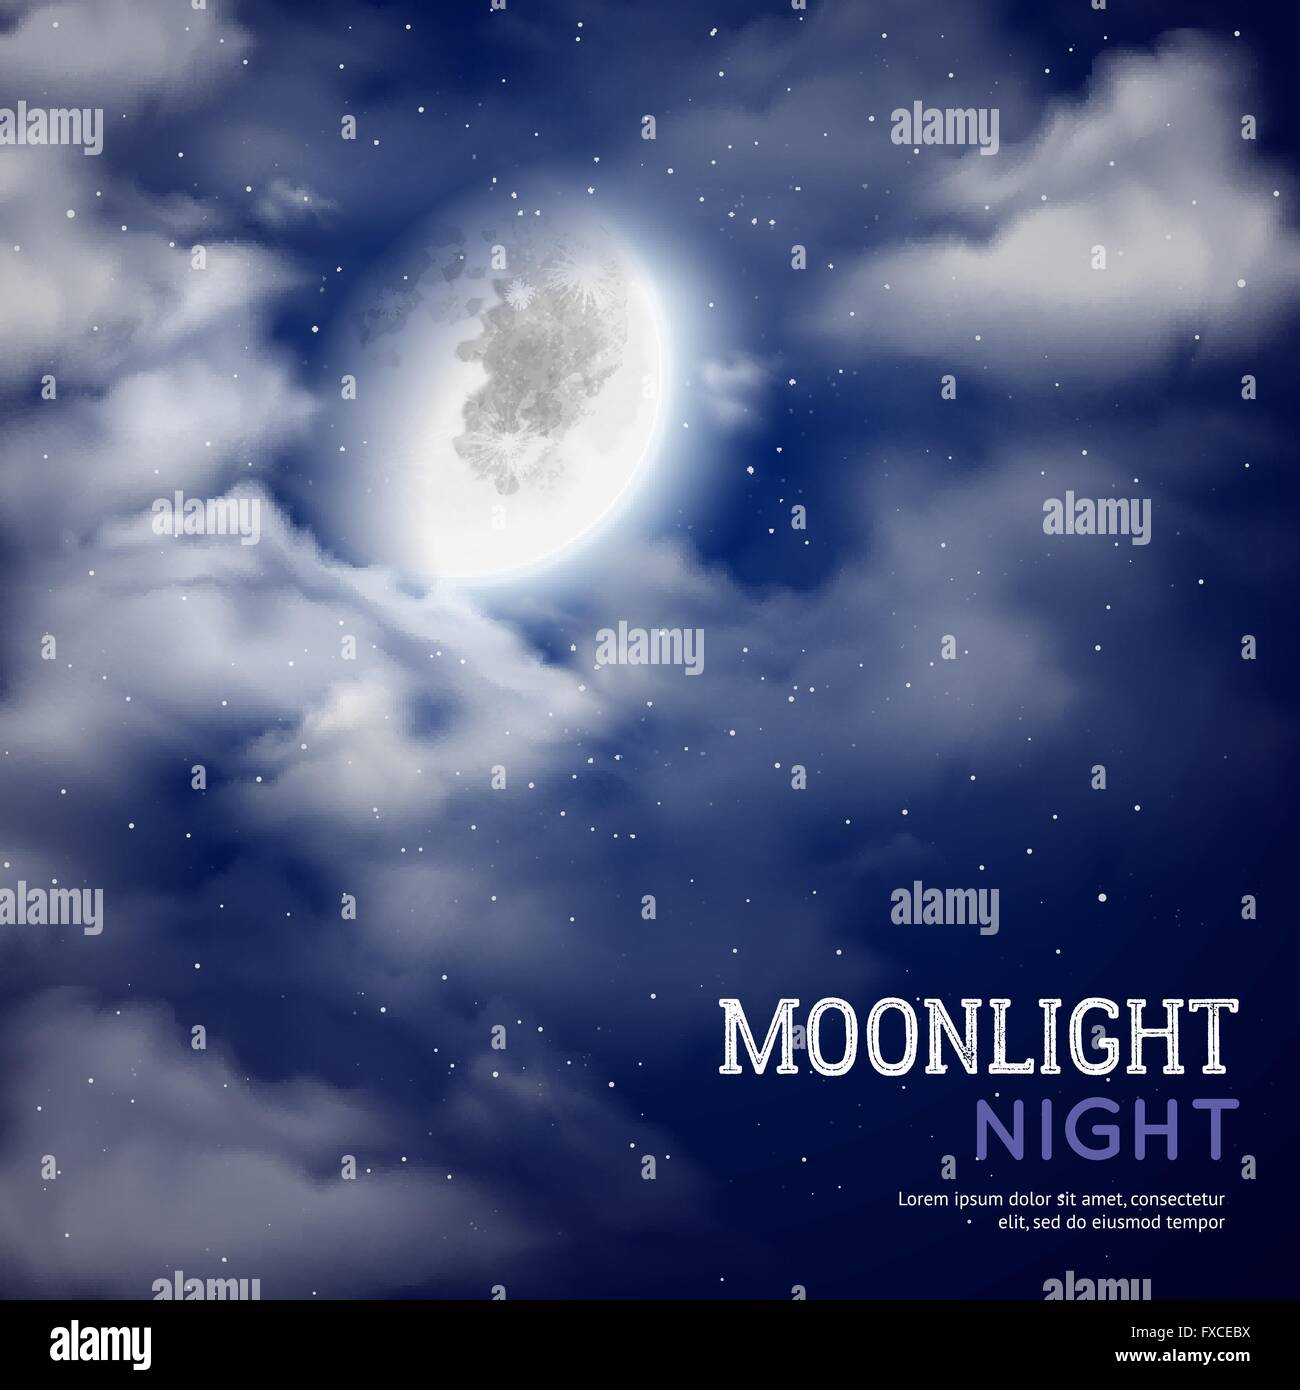 Moonlight night illustration Stock Vector